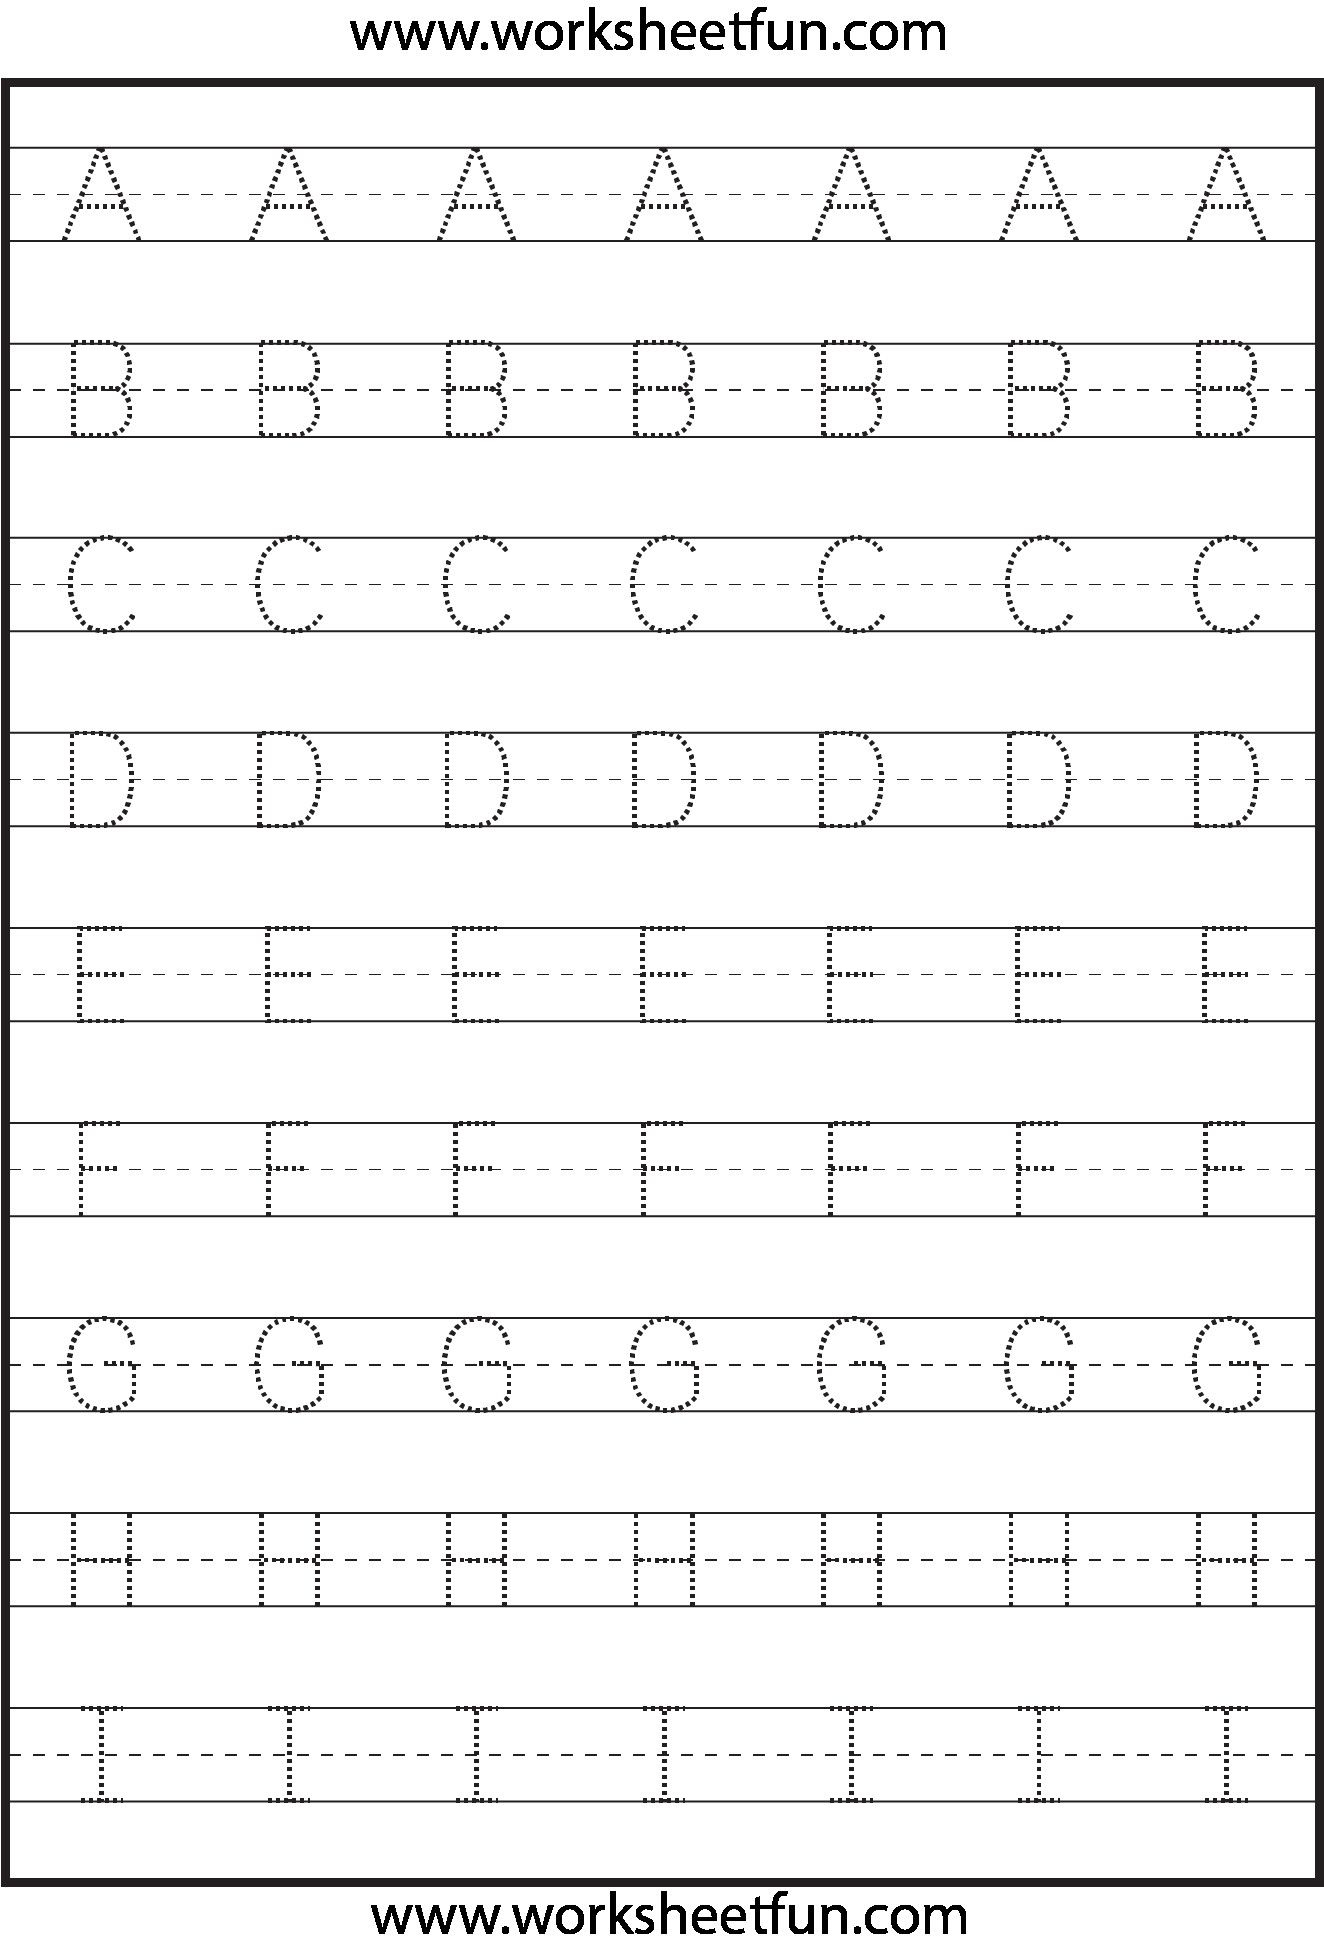 5 Alphabet Letter Worksheets For Preschool In 2020 with regard to Letter 5 Tracing